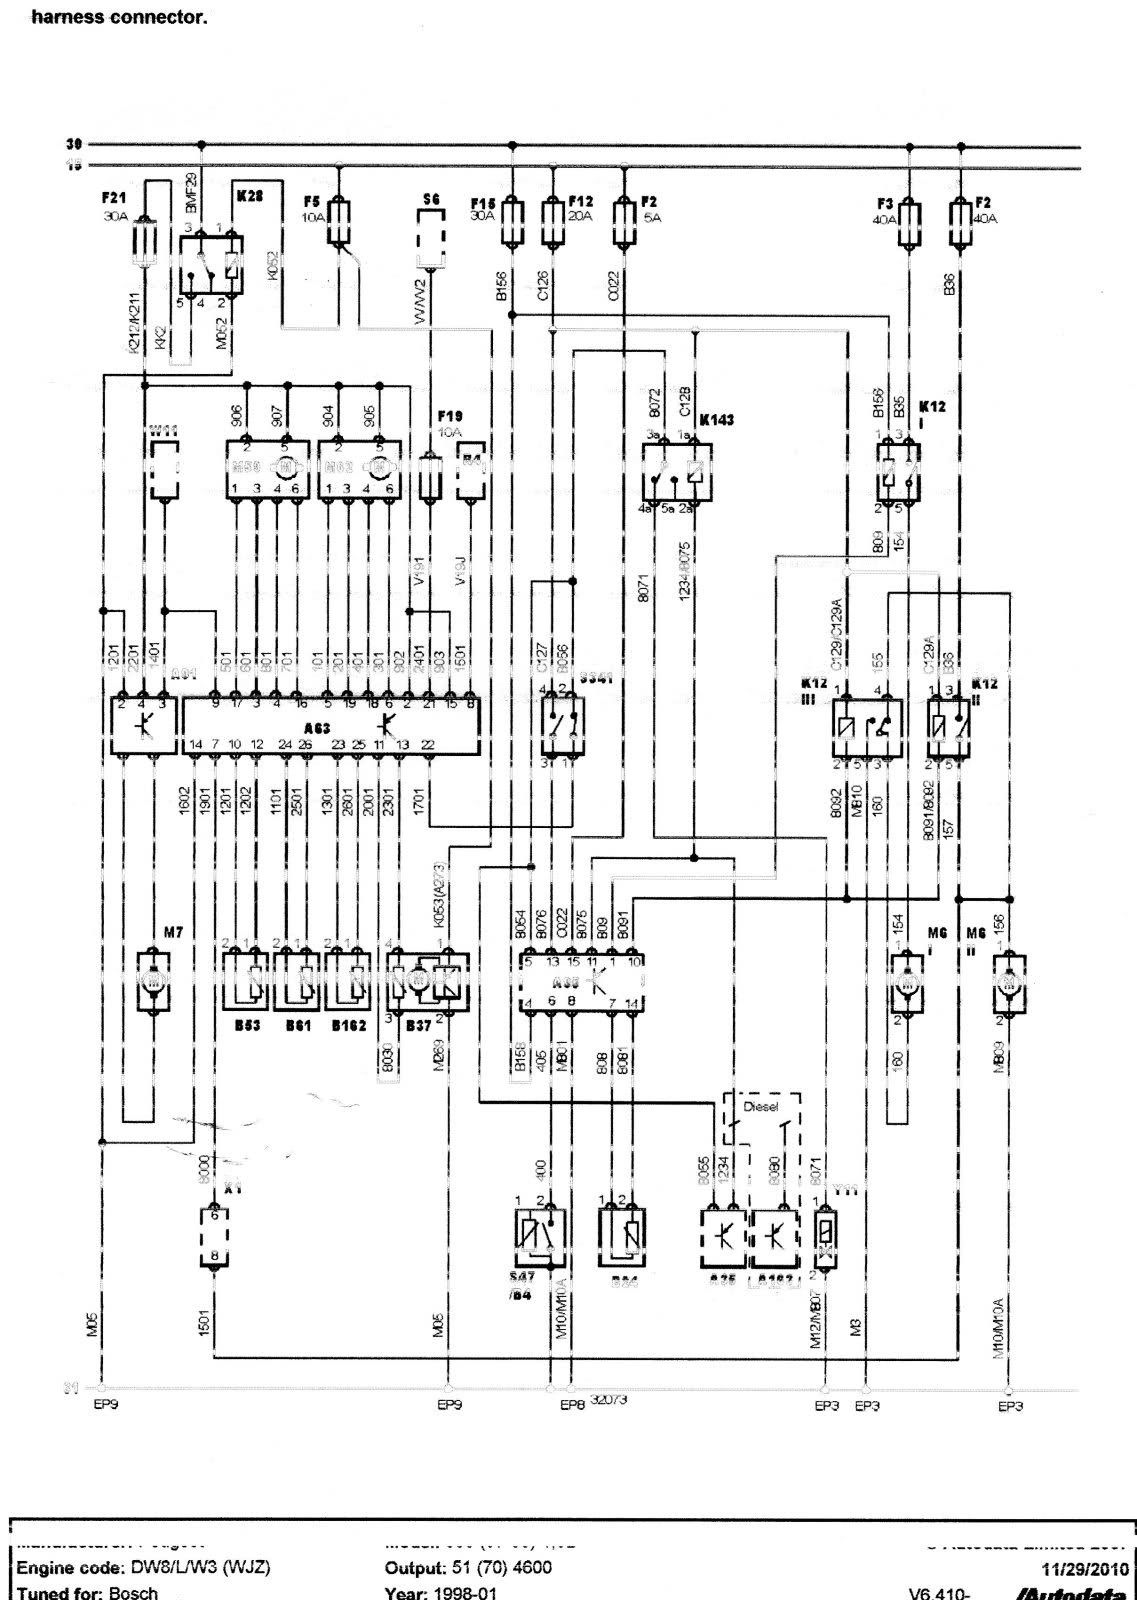 Peugeot Wiring Diagram 307 Reinvent Your 1995 Eagle Talon Engine 206 11 U2022 Rh Kismetcars Co Uk